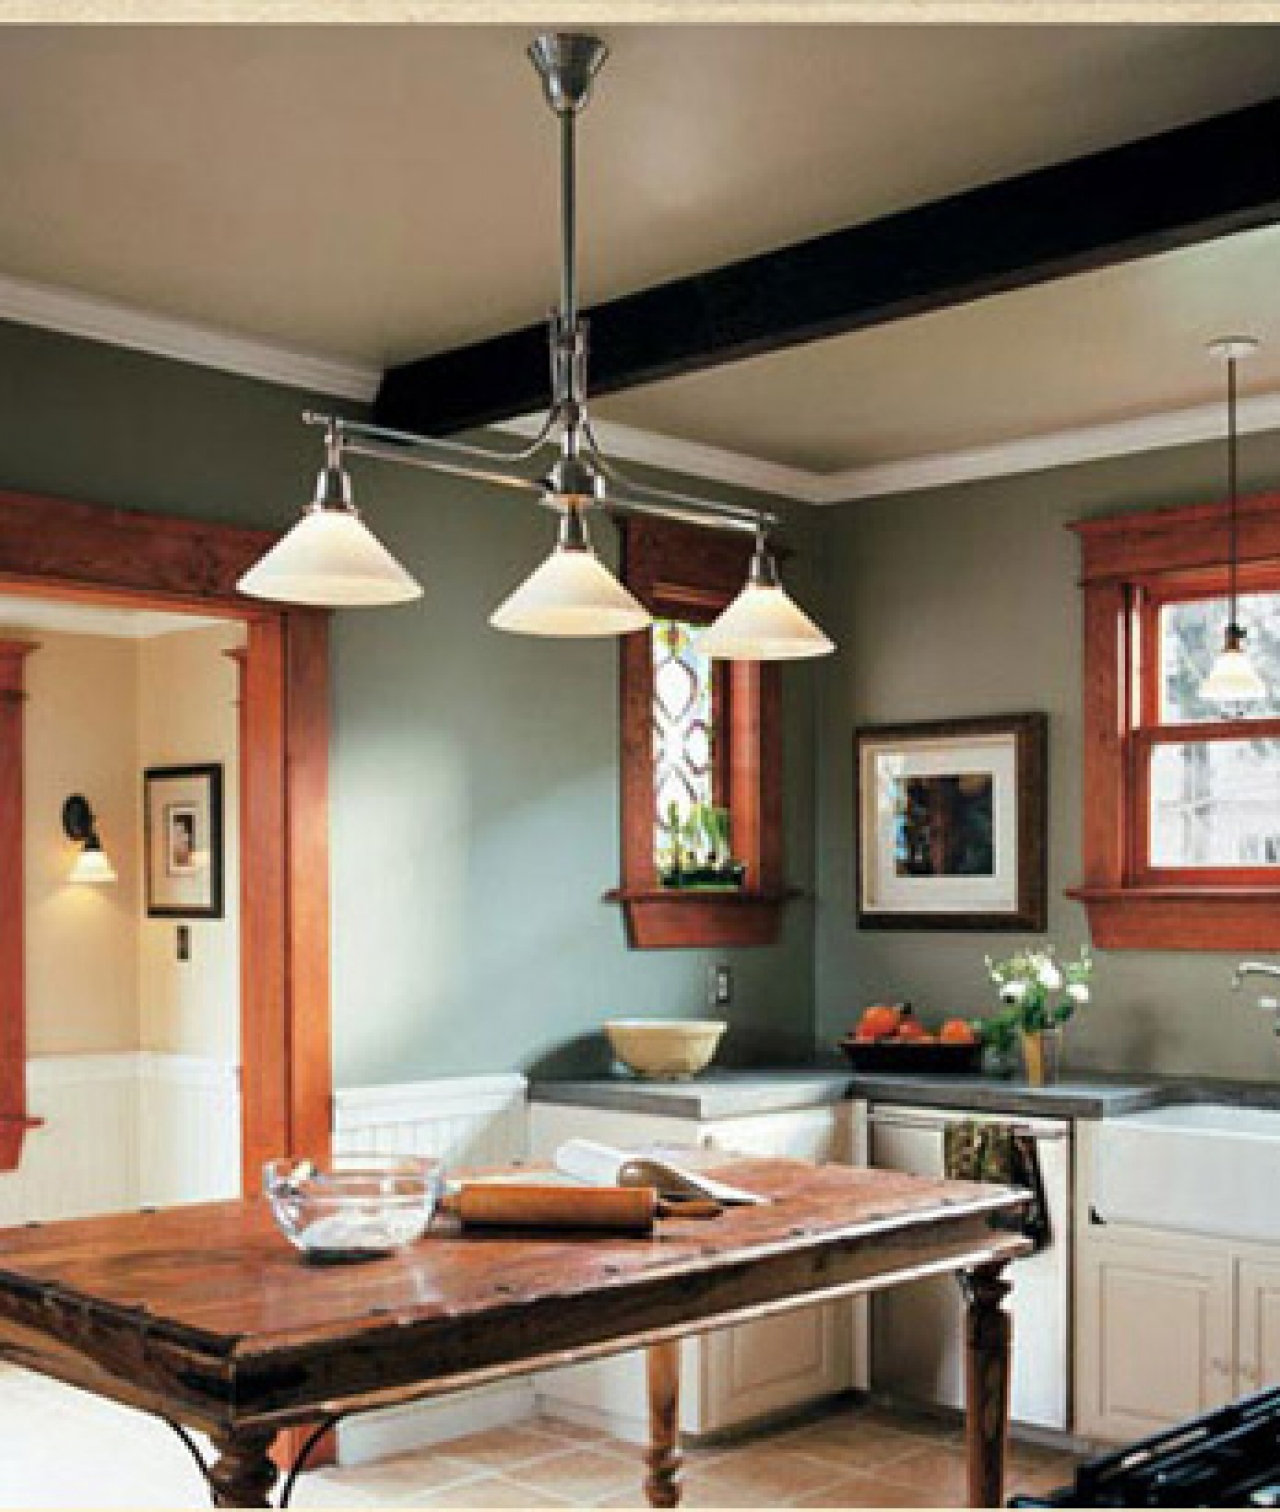 Mini Pendant Lights For Kitchen Kitchen Lighting Nice Looking Millennium Lighting Manchester 3 Light Kitchen Pendant Lighting Over Teak Wooden Butcher Block Island With White Wooden Top Image Lighting